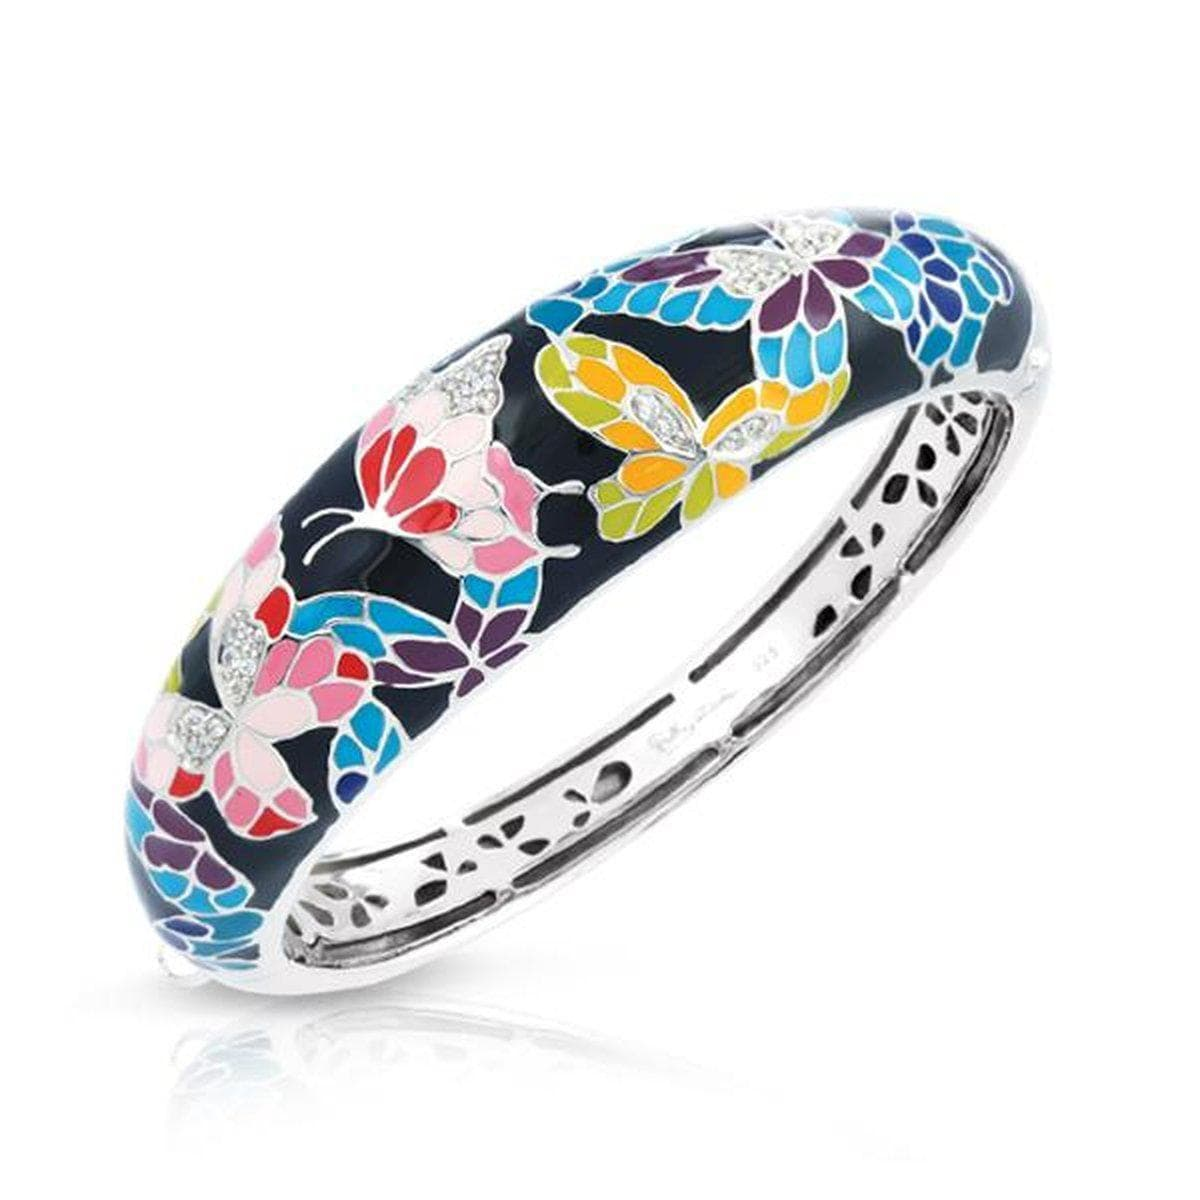 Butterfly Kisses Black Bangle-Belle Etoile-Renee Taylor Gallery